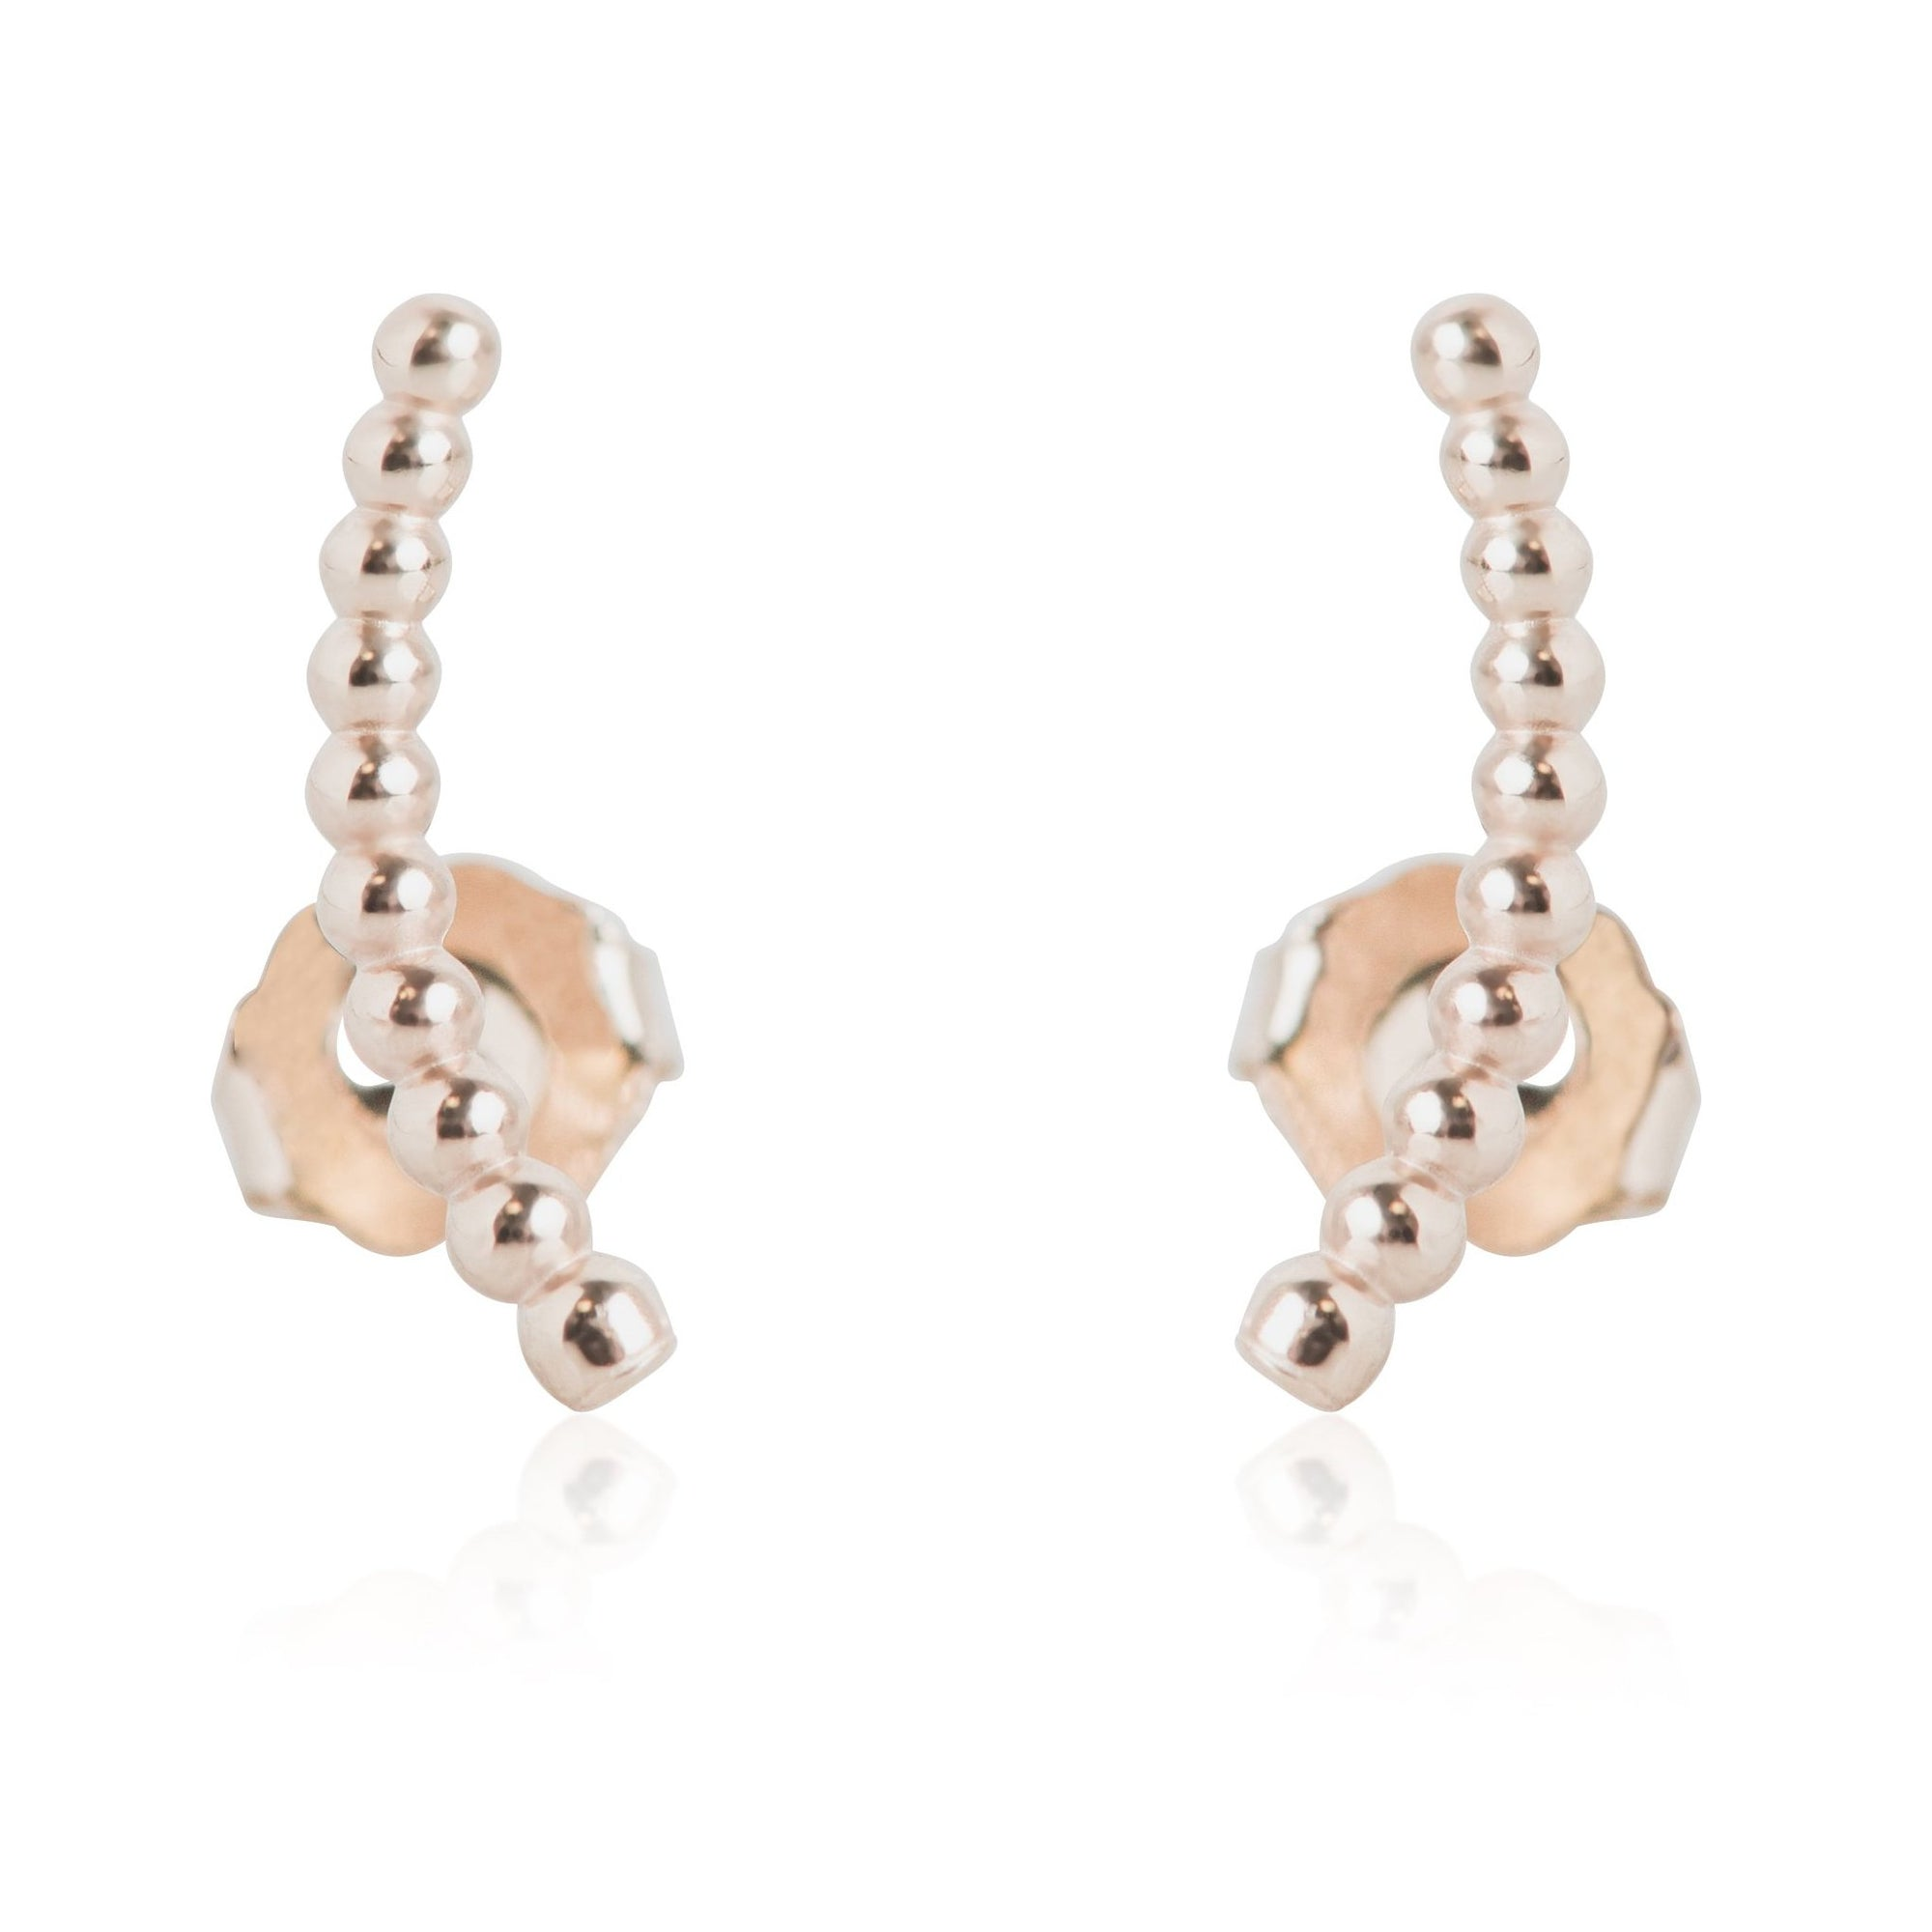 YELLOW OR ROSE GOLD BEADED EAR CLIMBERS STUD EARRINGS